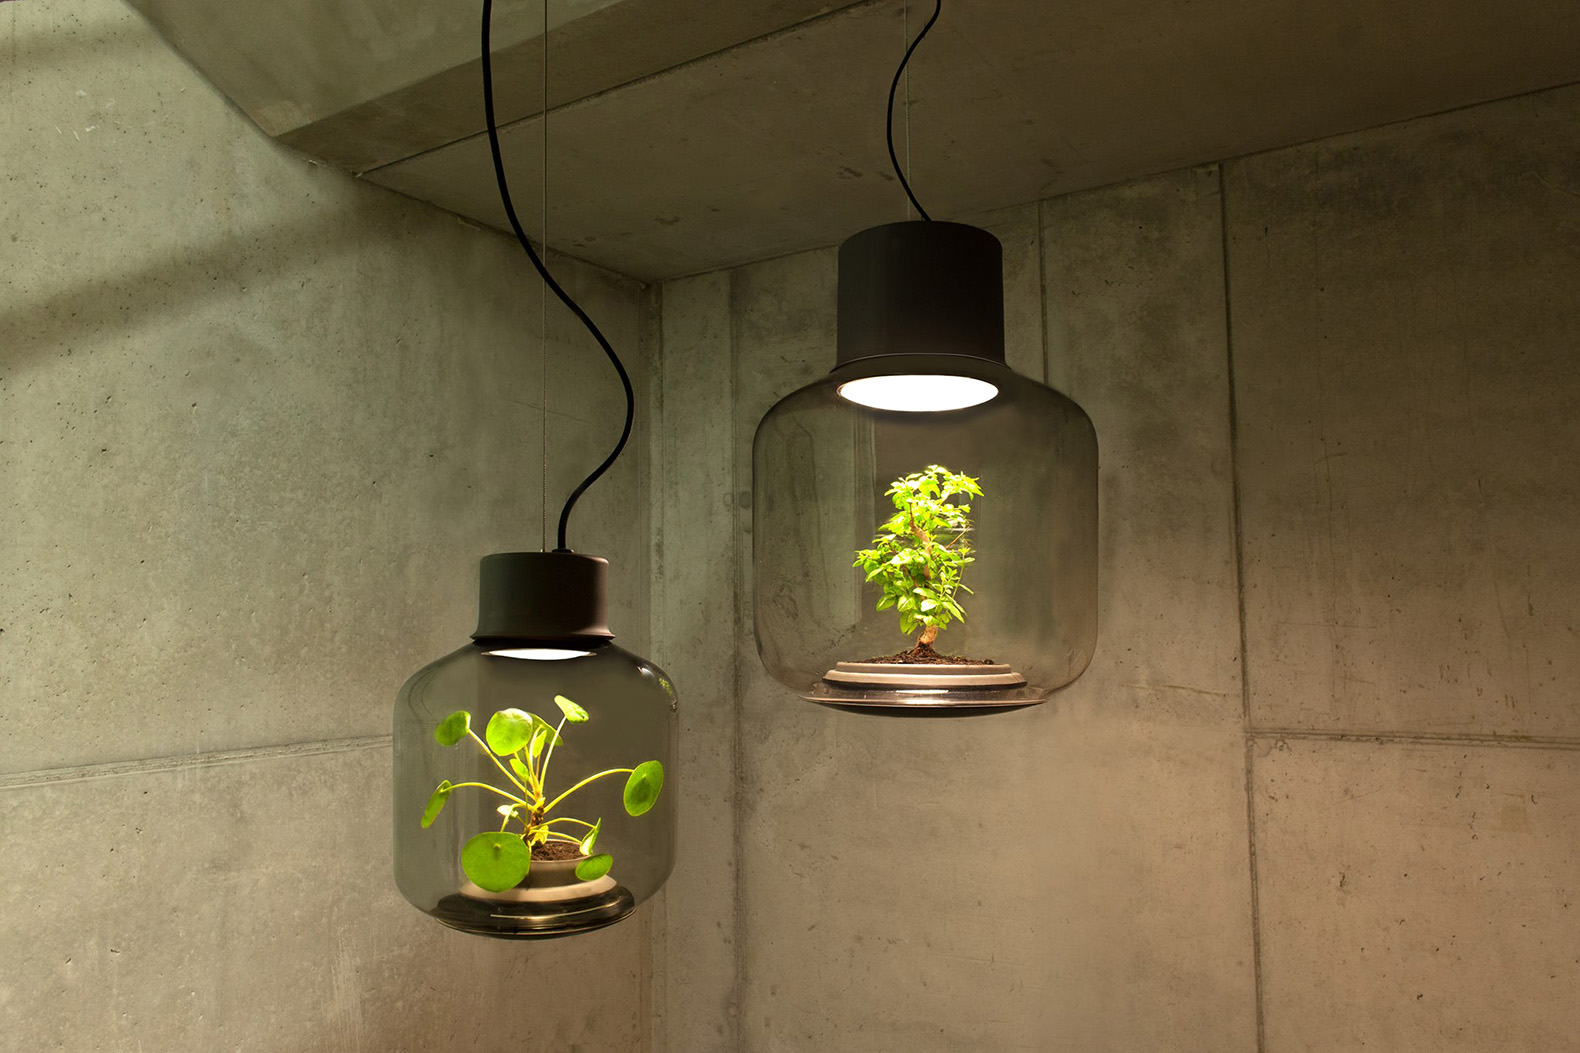 These lamps let you grow plants anywhere – even in windowless rooms